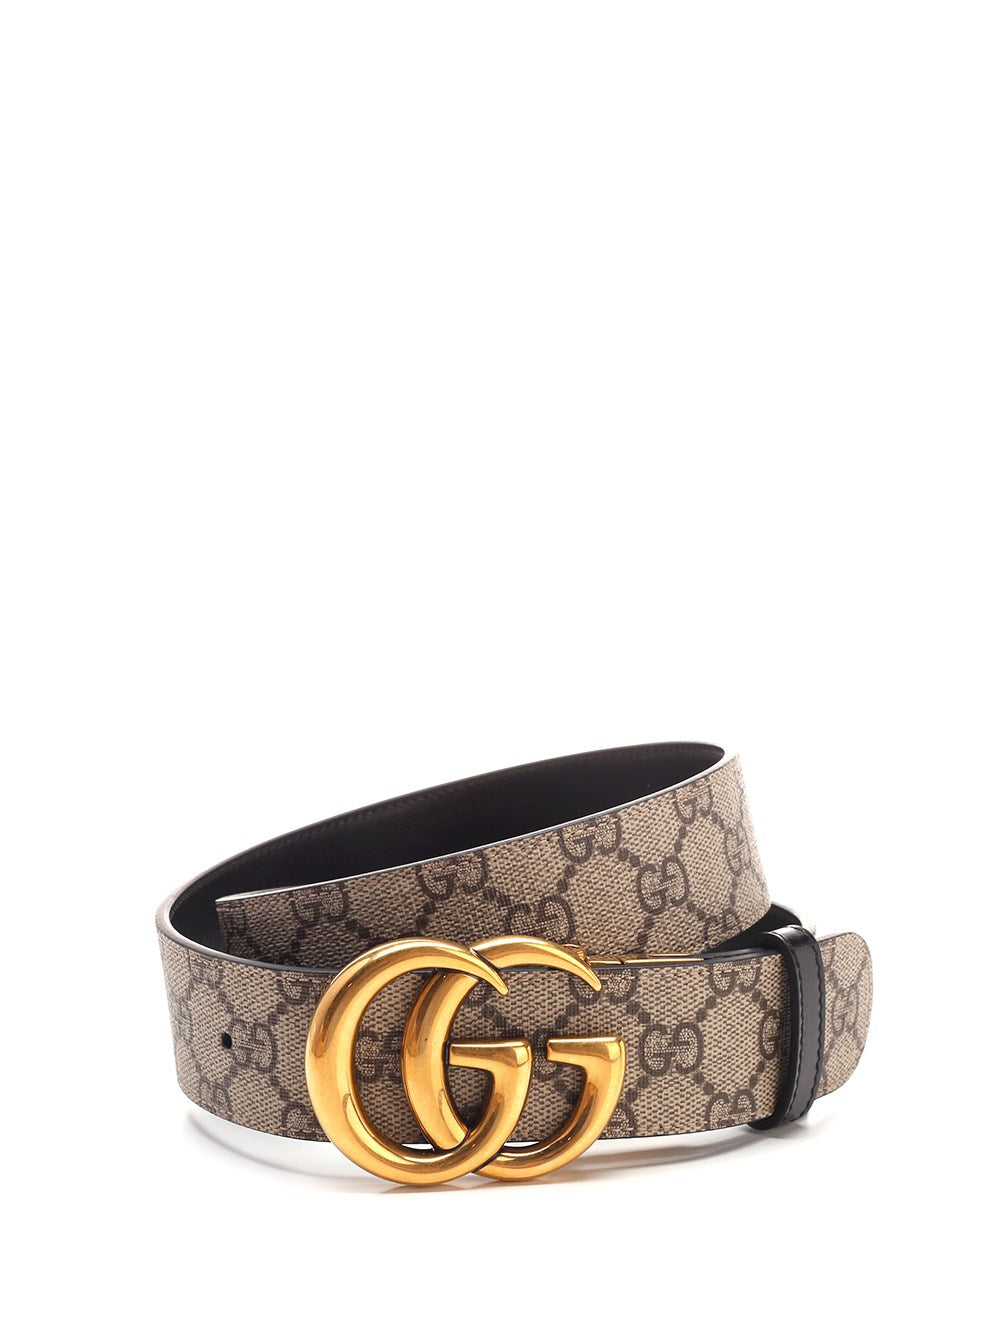 Gucci Reversible Marmont Belt In Multi